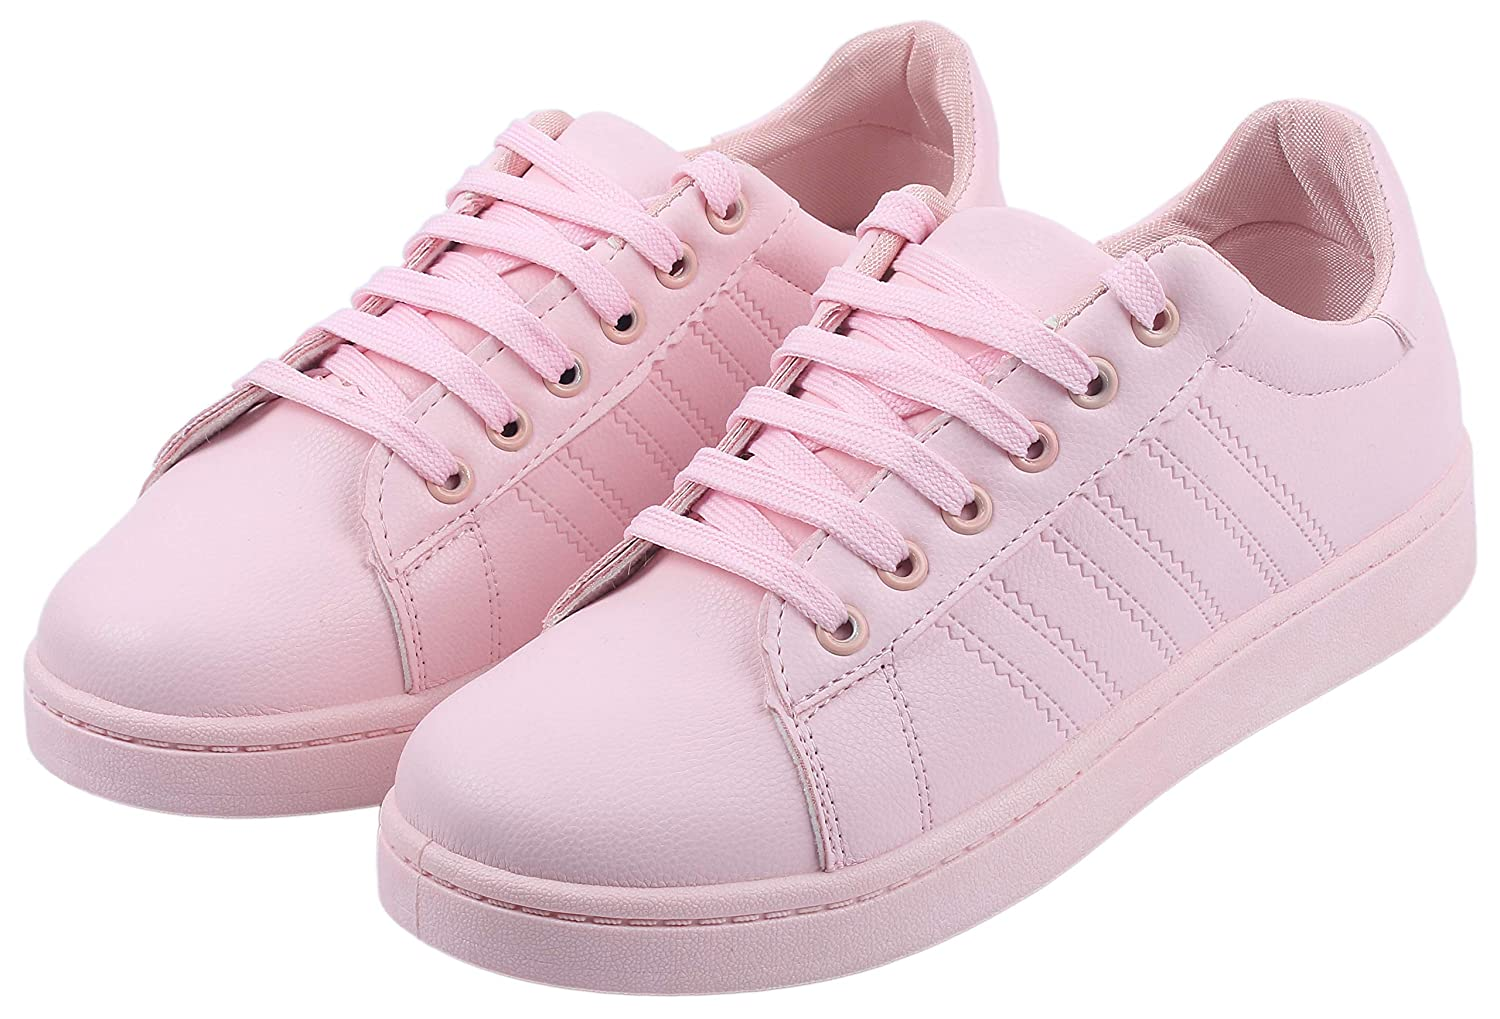 Irsoe Kickonn Star Smart Pink Casual Sneakers for Girls and Women